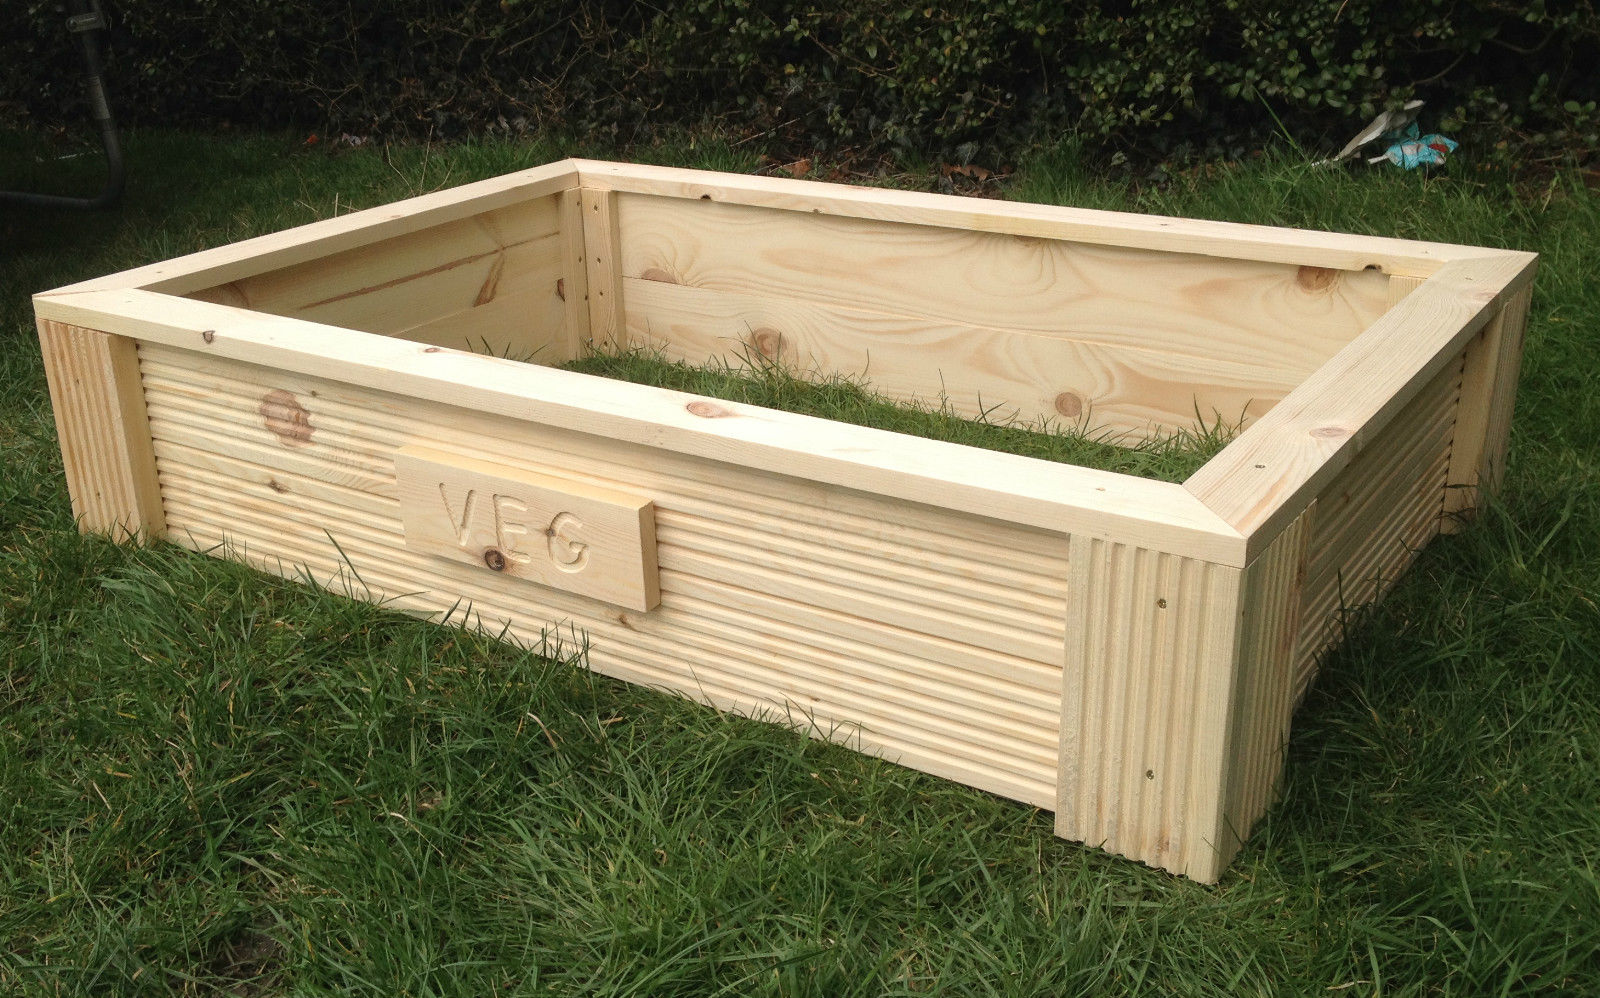 decking raised bed garden planter 1200x600x240mm 4ftx2ft